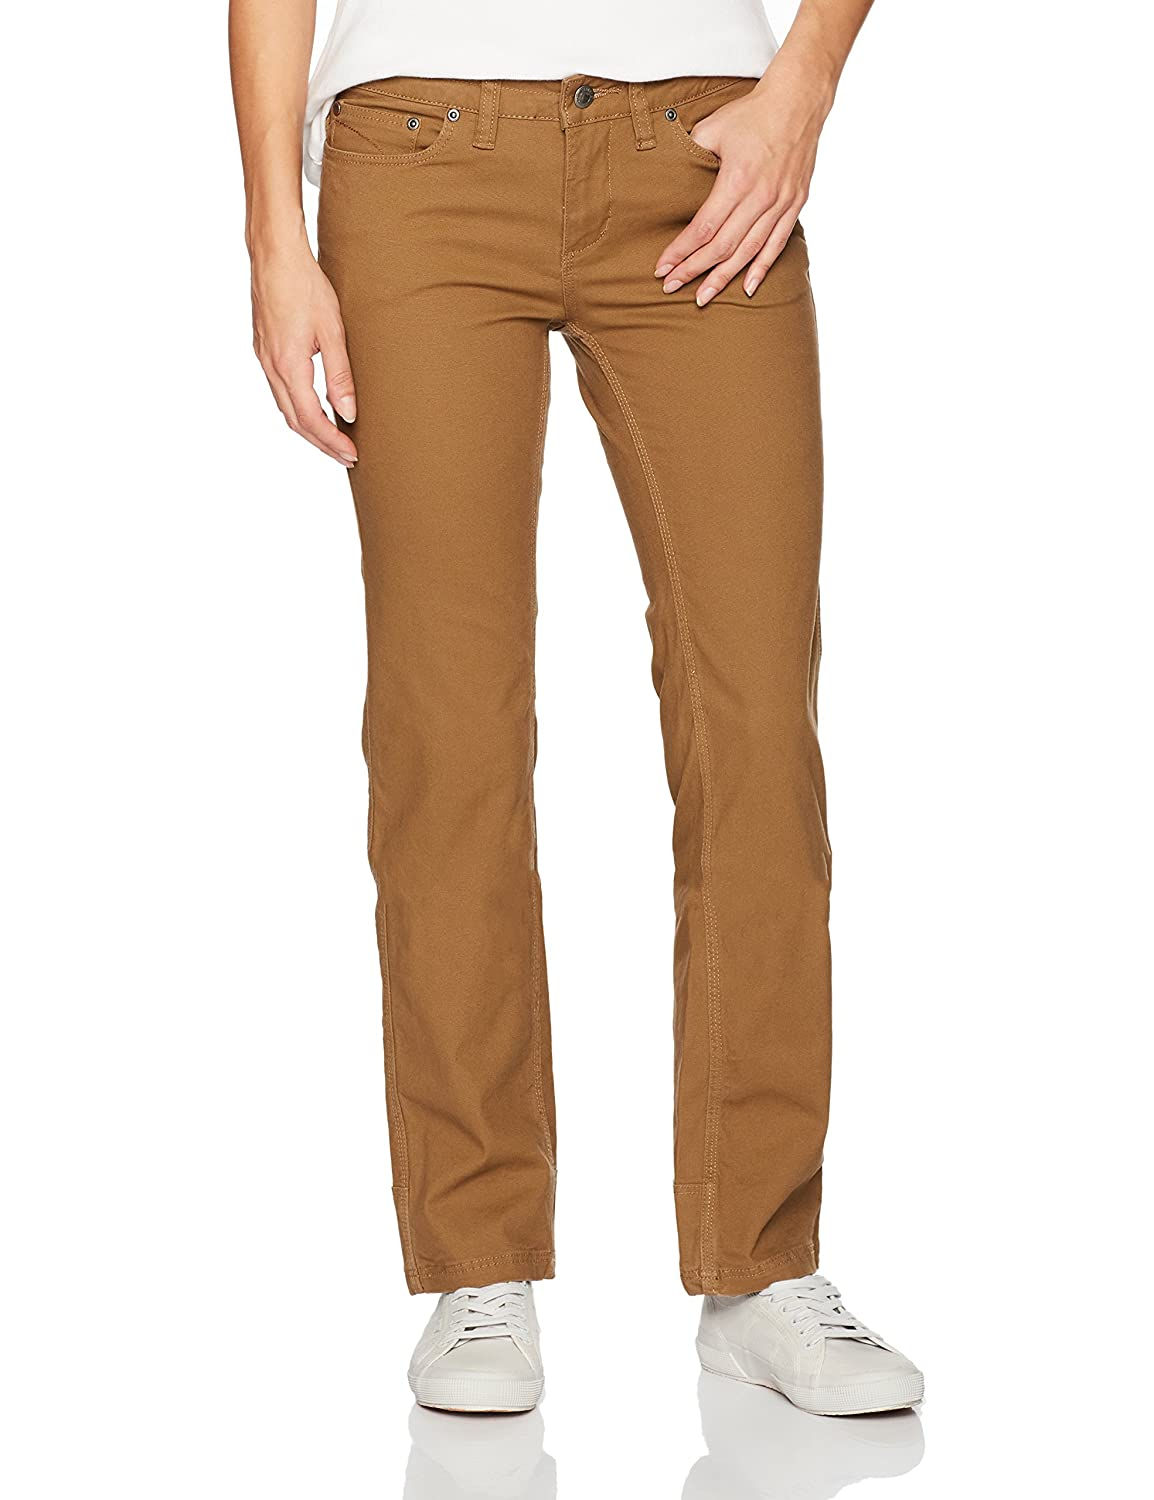 Mountain Khakis Women's Camber 106 Classic fit Pants 984